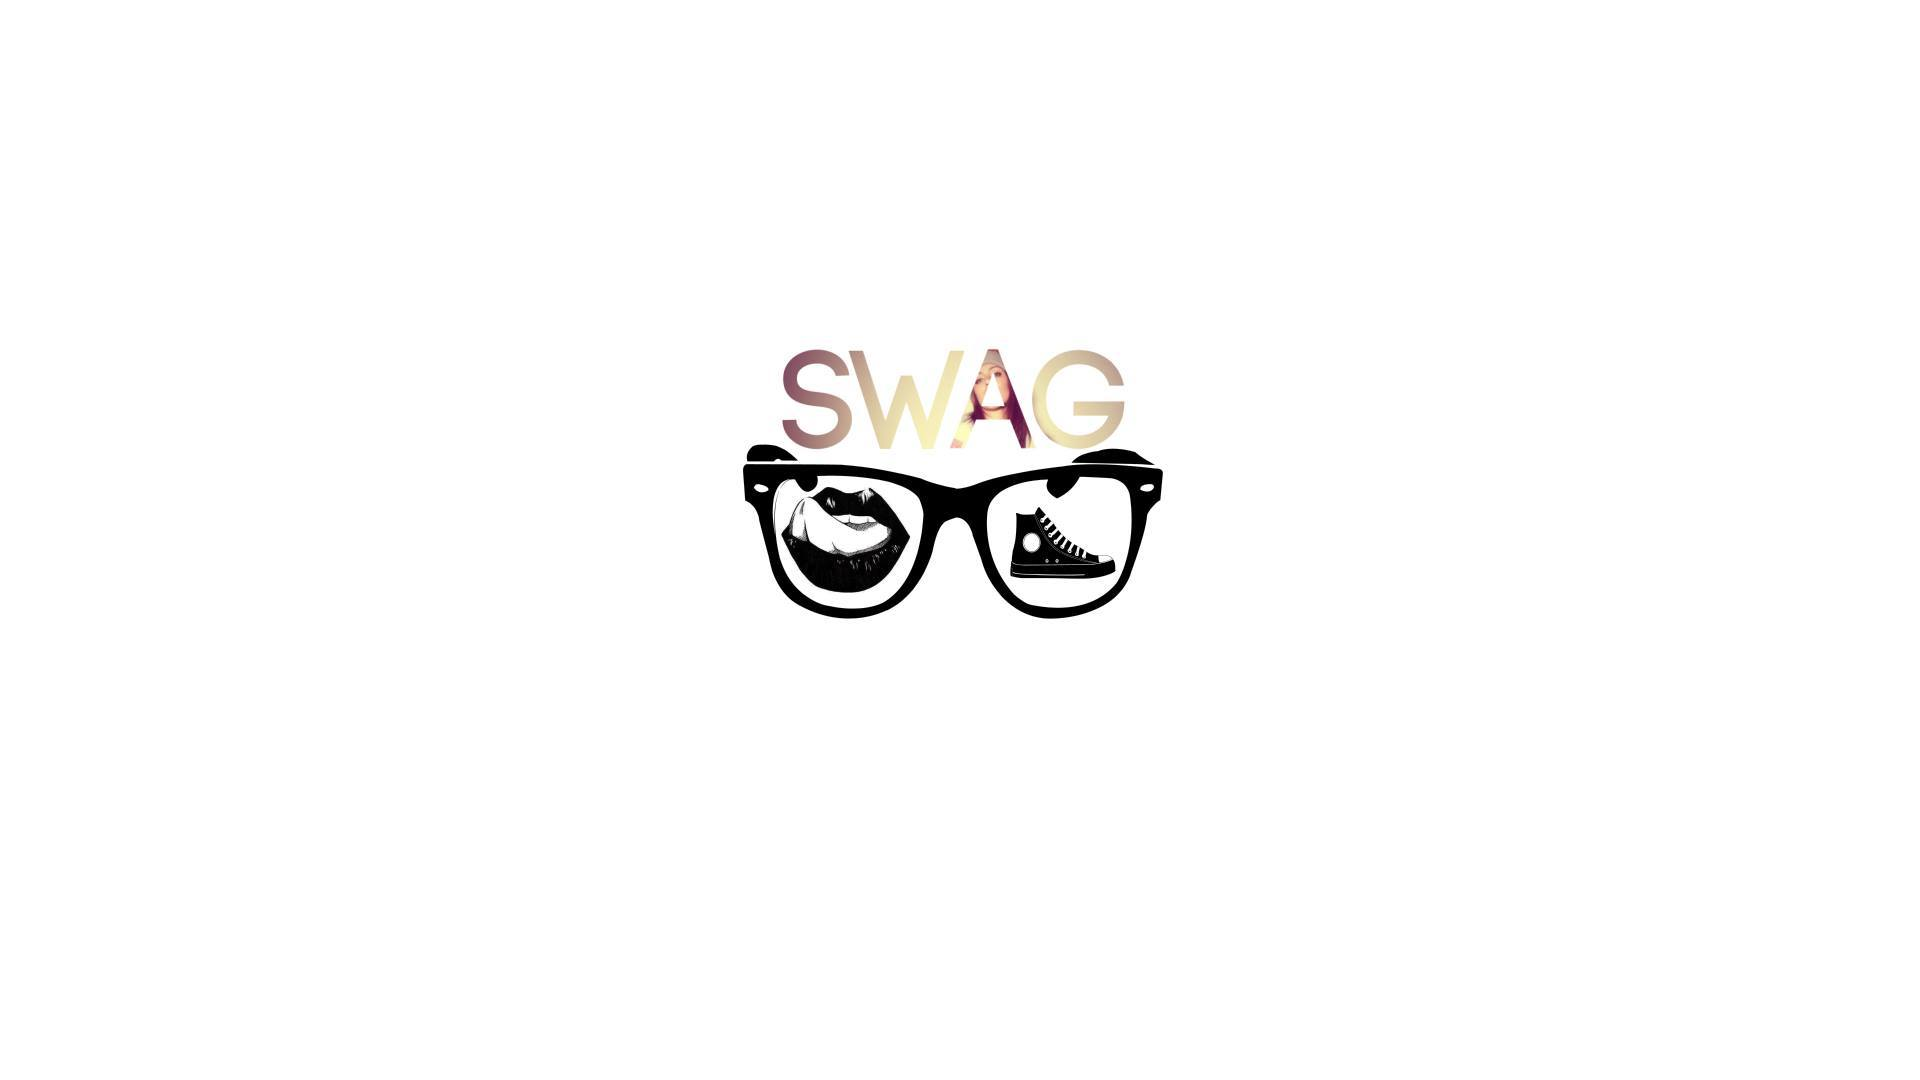 Swag clipart cute glass Wallpaper minimalist  shoes glasses